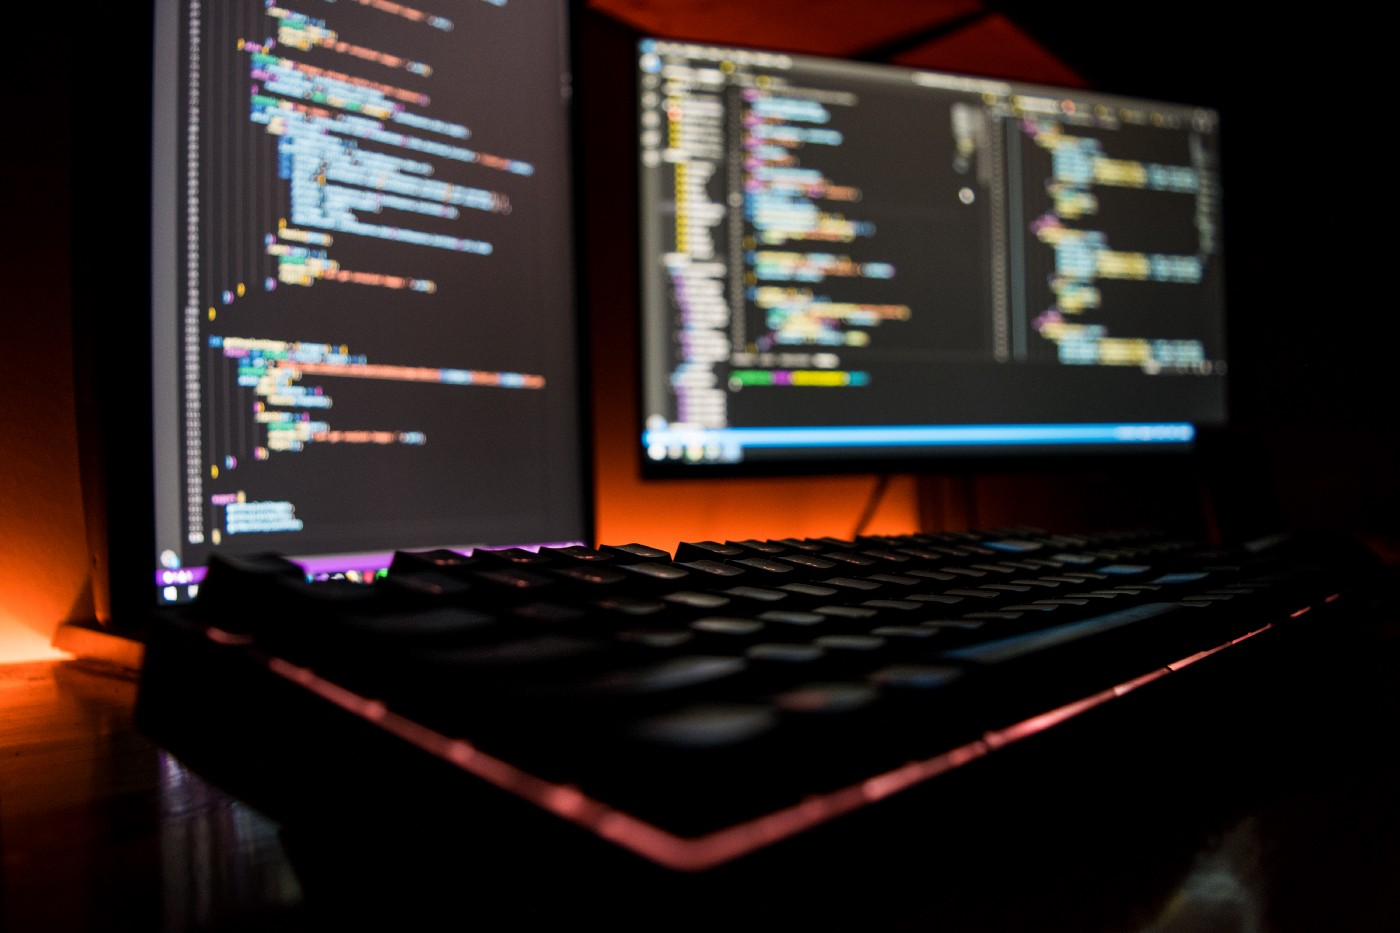 A picture of programming environment on a desktop